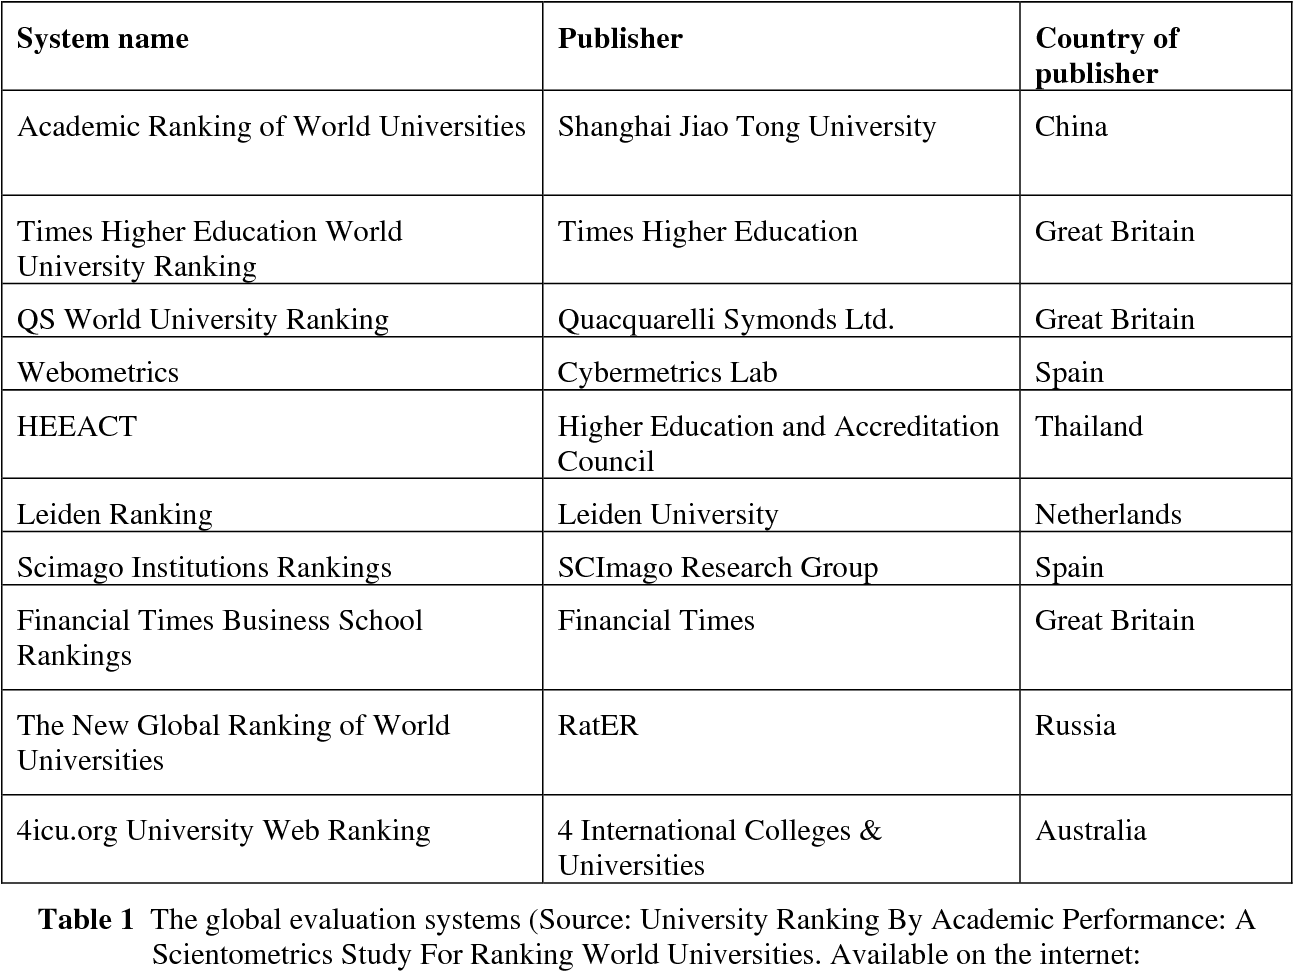 PDF] E-LEARNING AND THE TOP 200 UNIVERSITIES ACCORDING TO THE